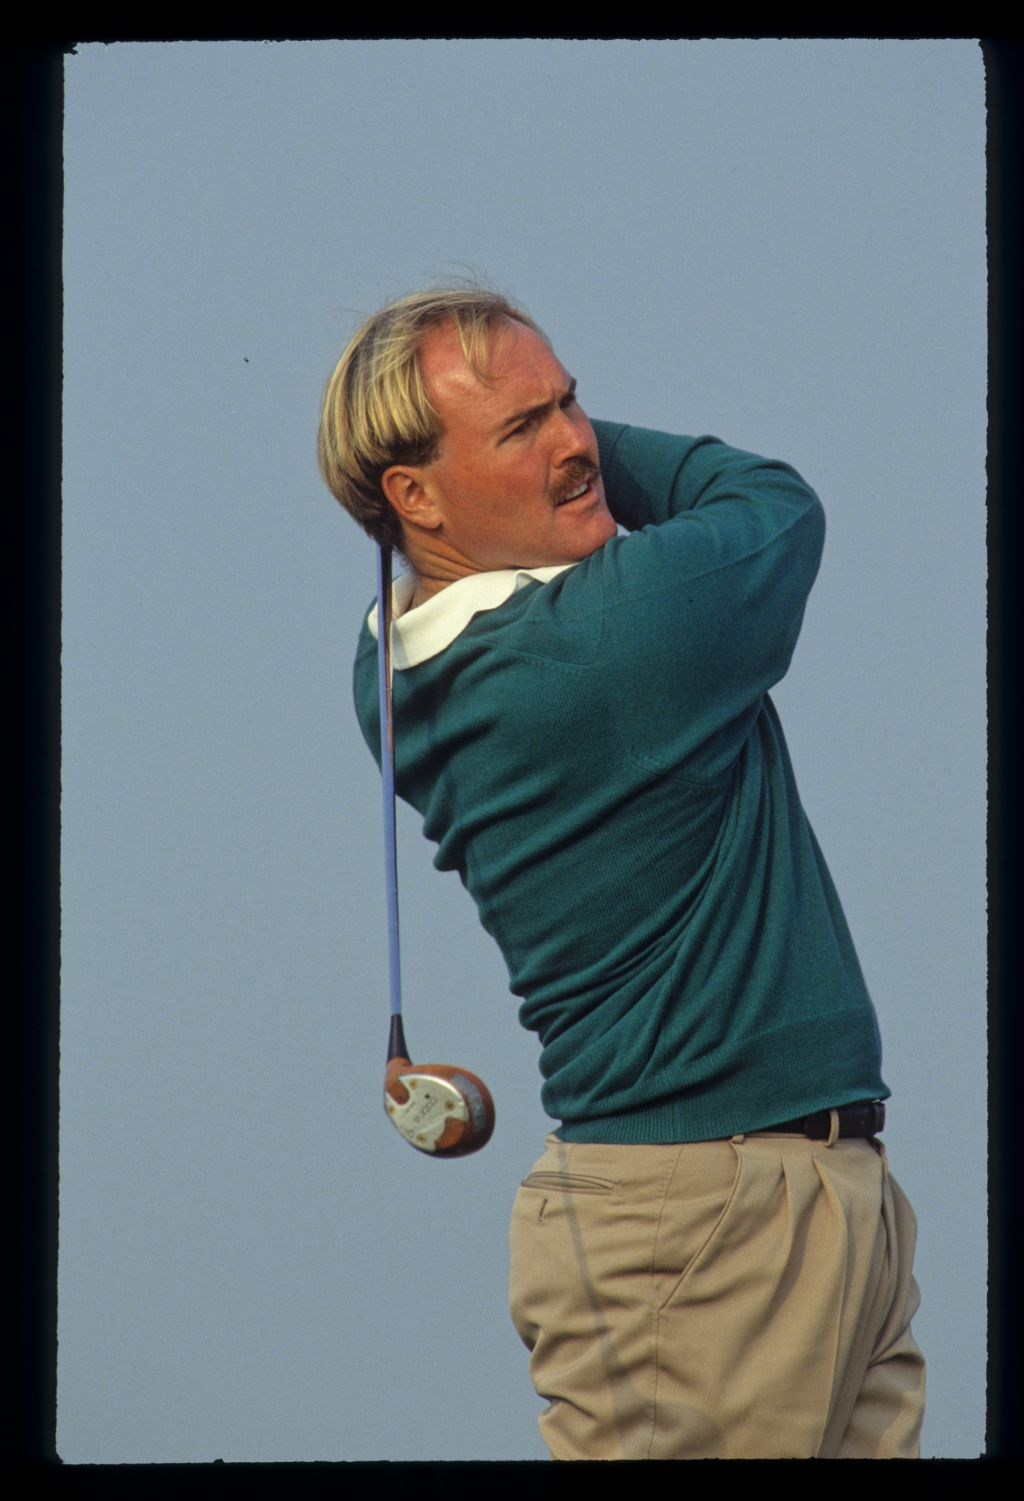 Ronan Rafferty following through on the way to victory at the 1990 Dunhill Cup